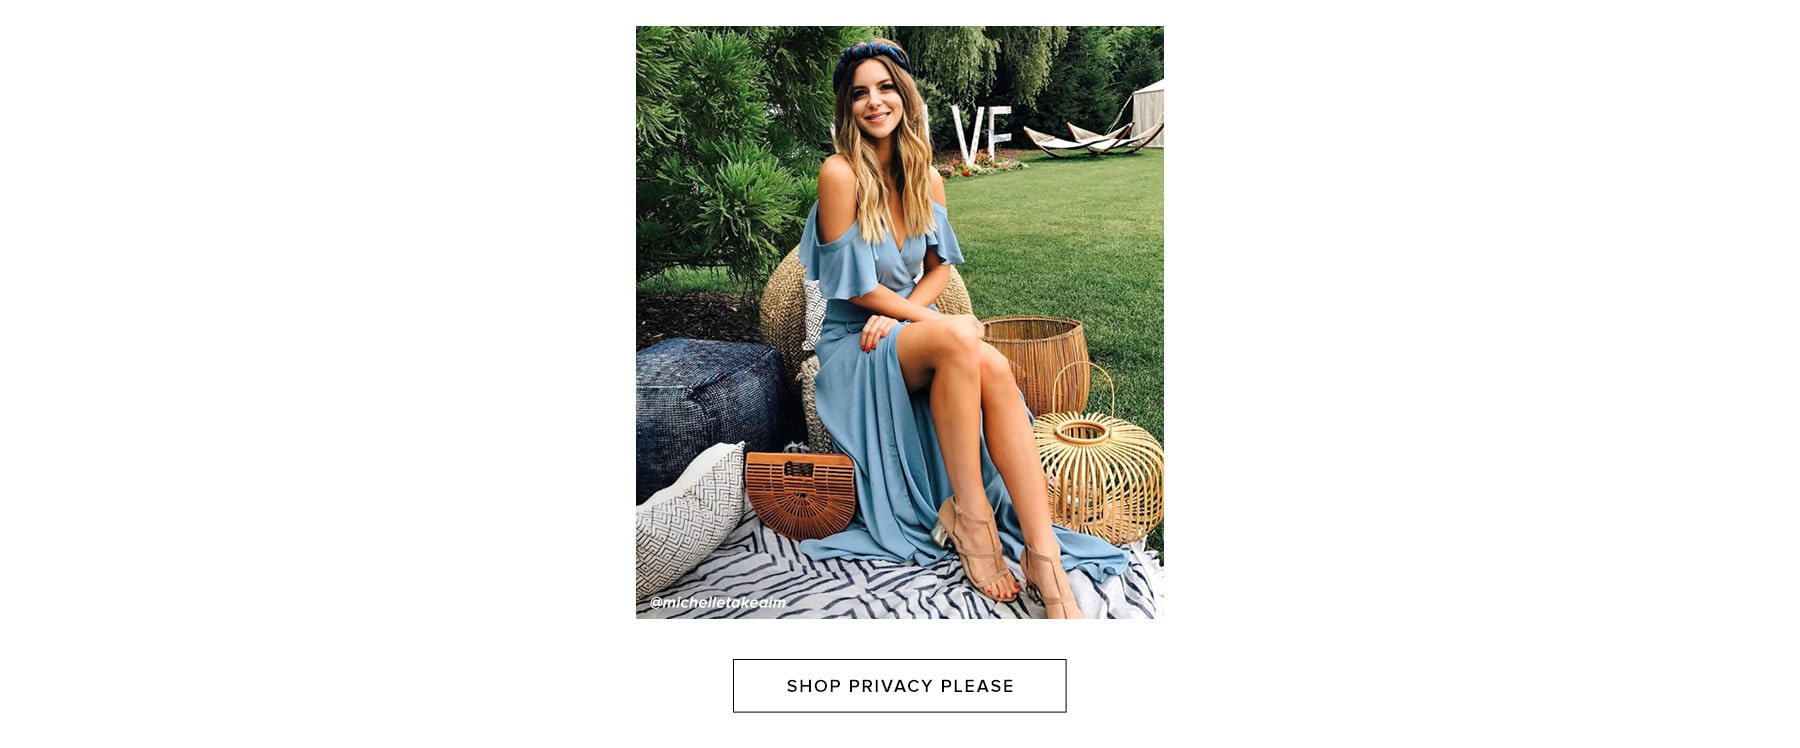 Shop Privacy Please